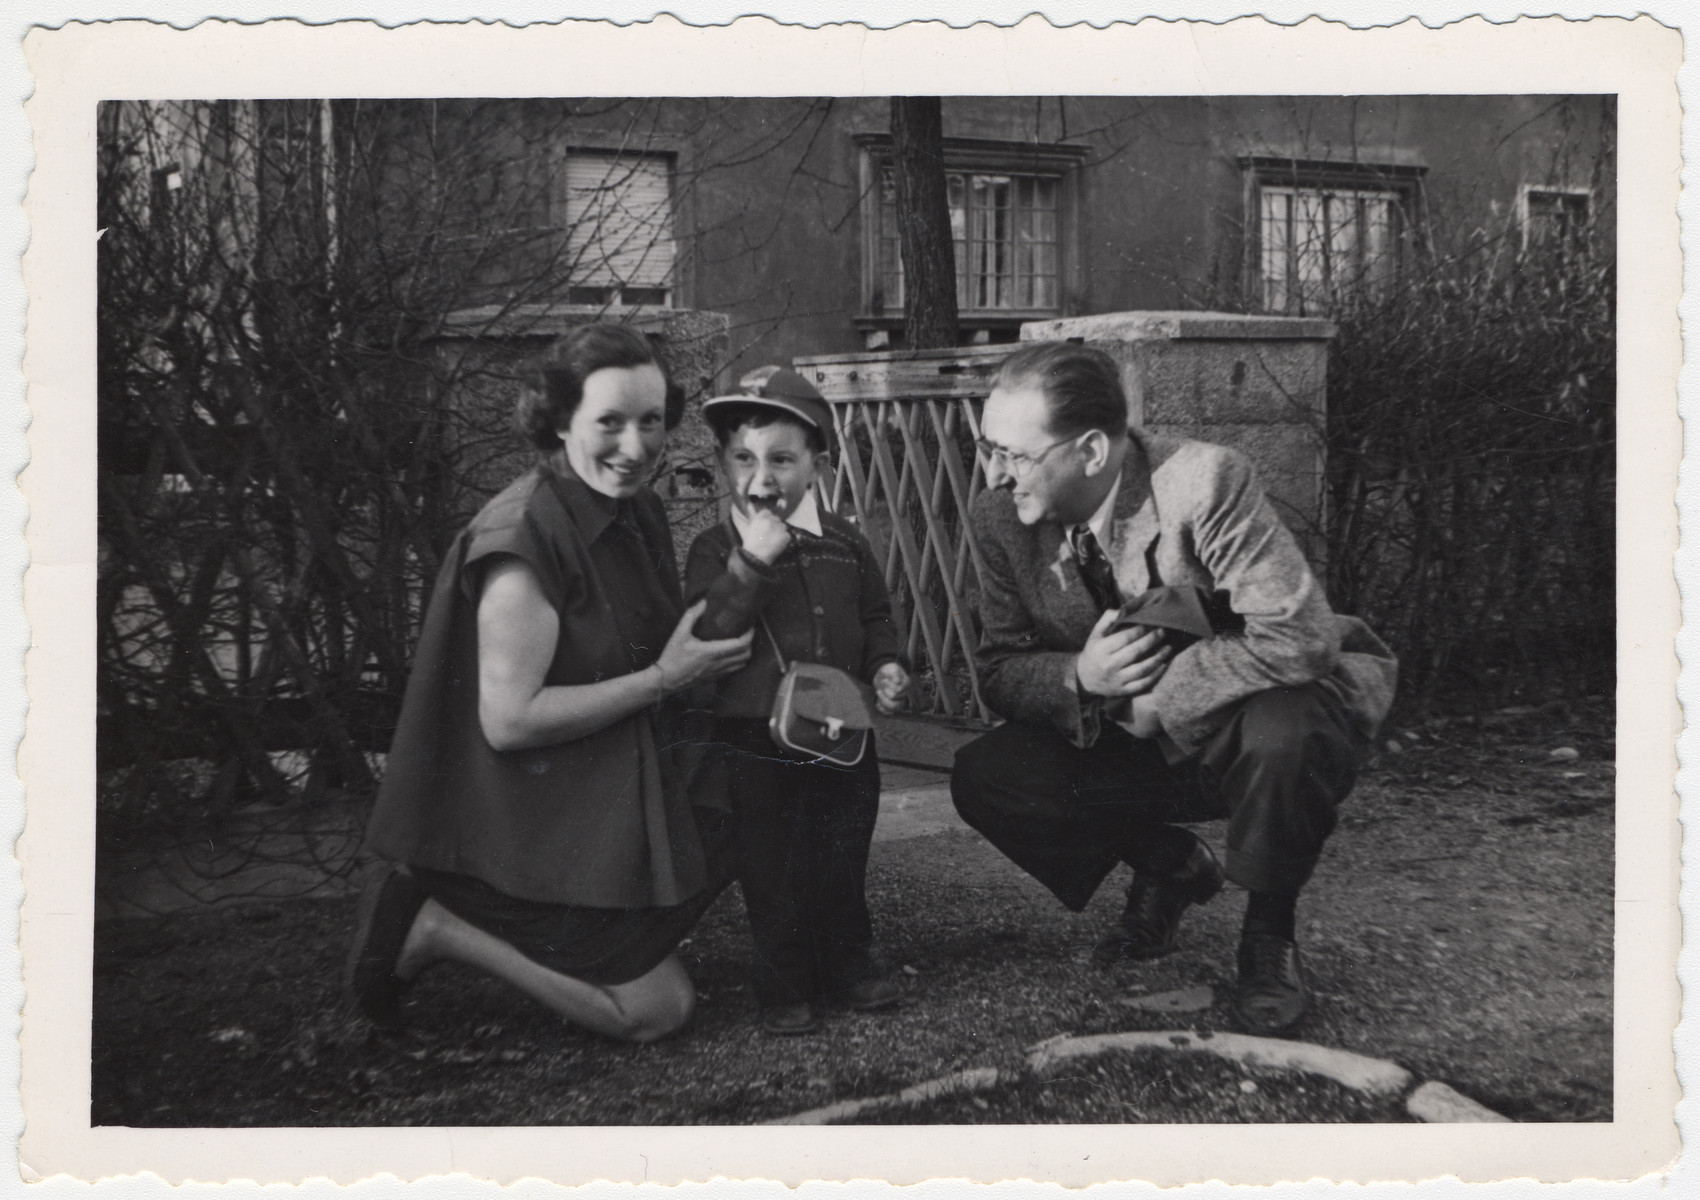 Valerie, Cary and Ernest Lowe pose outside their home in Branau where Ernest was working for American counter-intelligence  The previous occupant had been a German general.